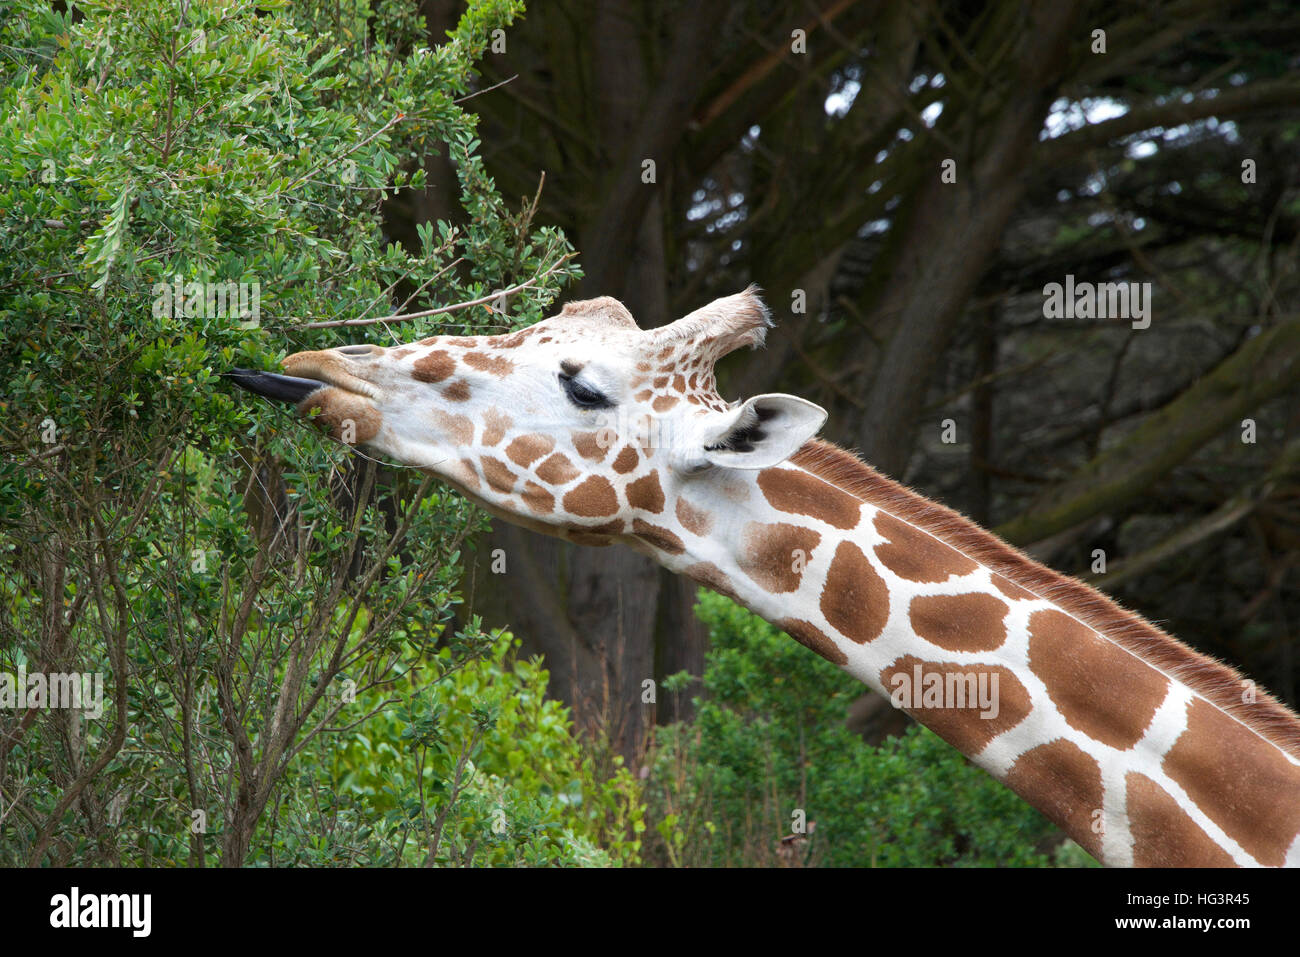 giraffe eating tree leaves tongue sticking out to grab leaves. - Stock Image